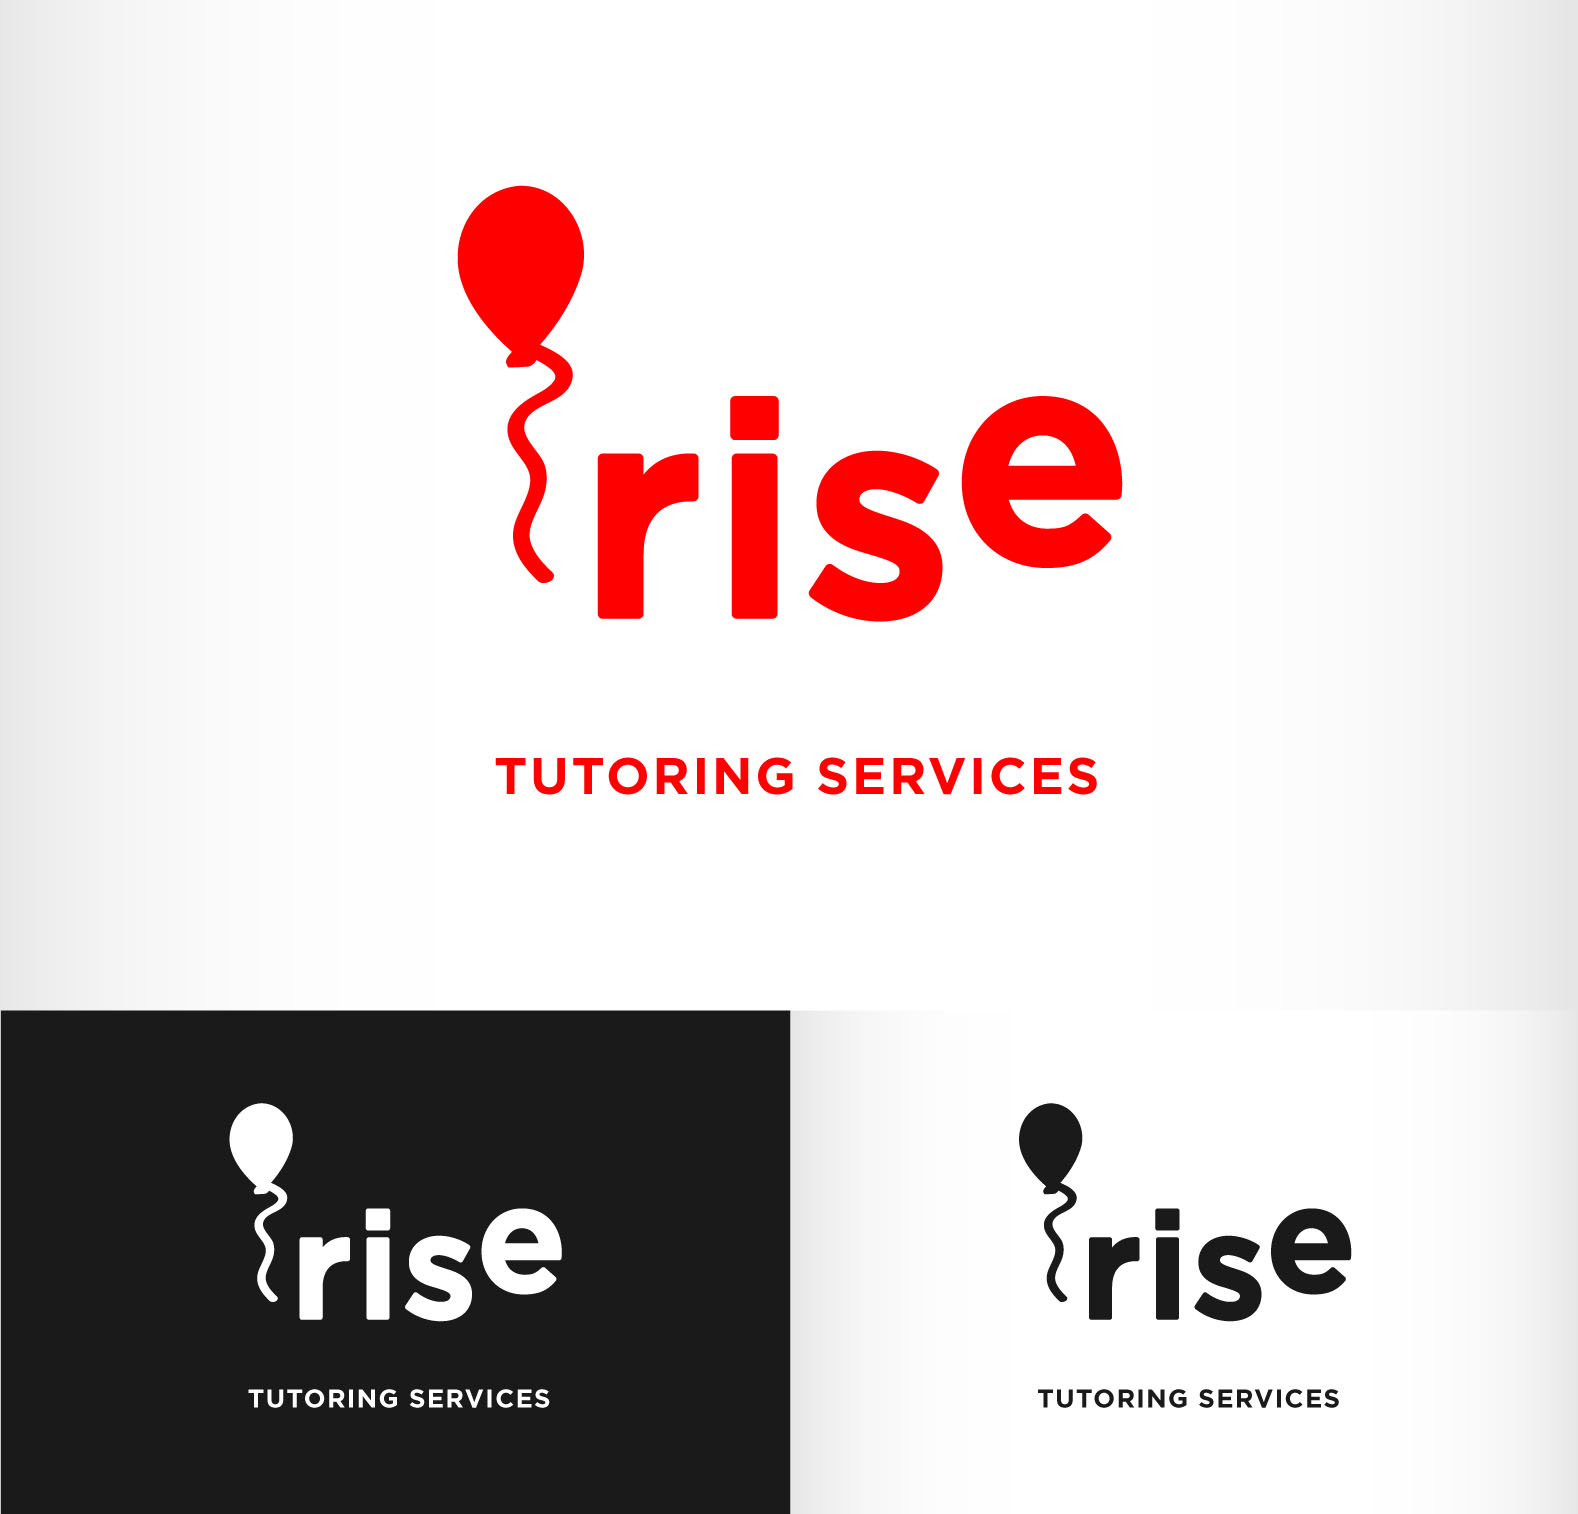 Logo Design by Andrés González - Entry No. 185 in the Logo Design Contest Imaginative Logo Design for Rise Tutoring Service.